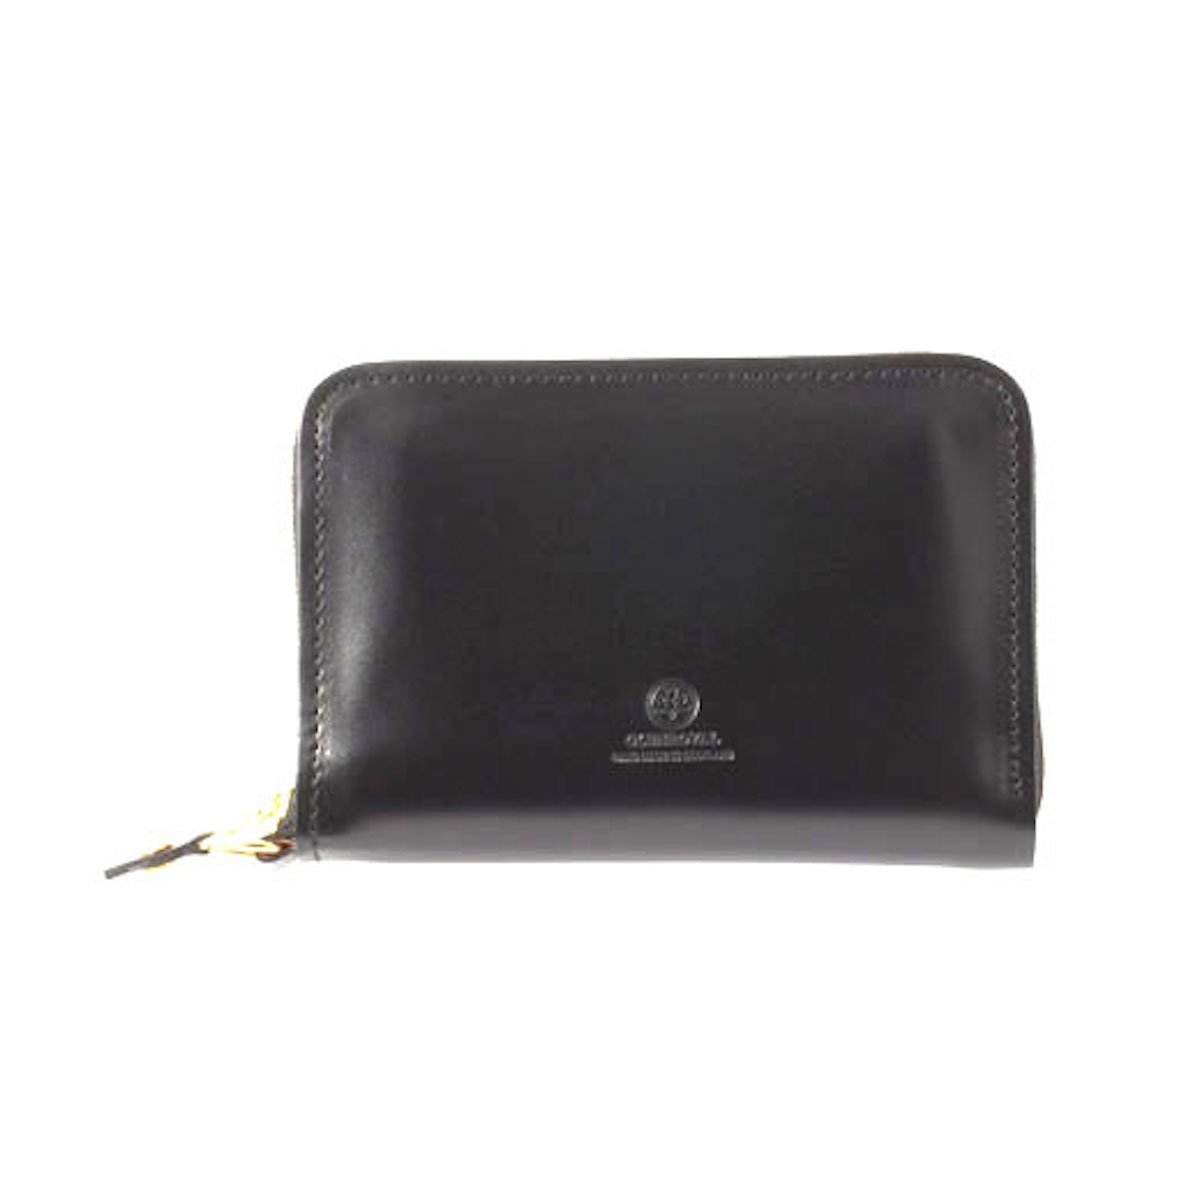 GLEN ROYAL / WALLET WITH DIVIDERS -NEW BLACK